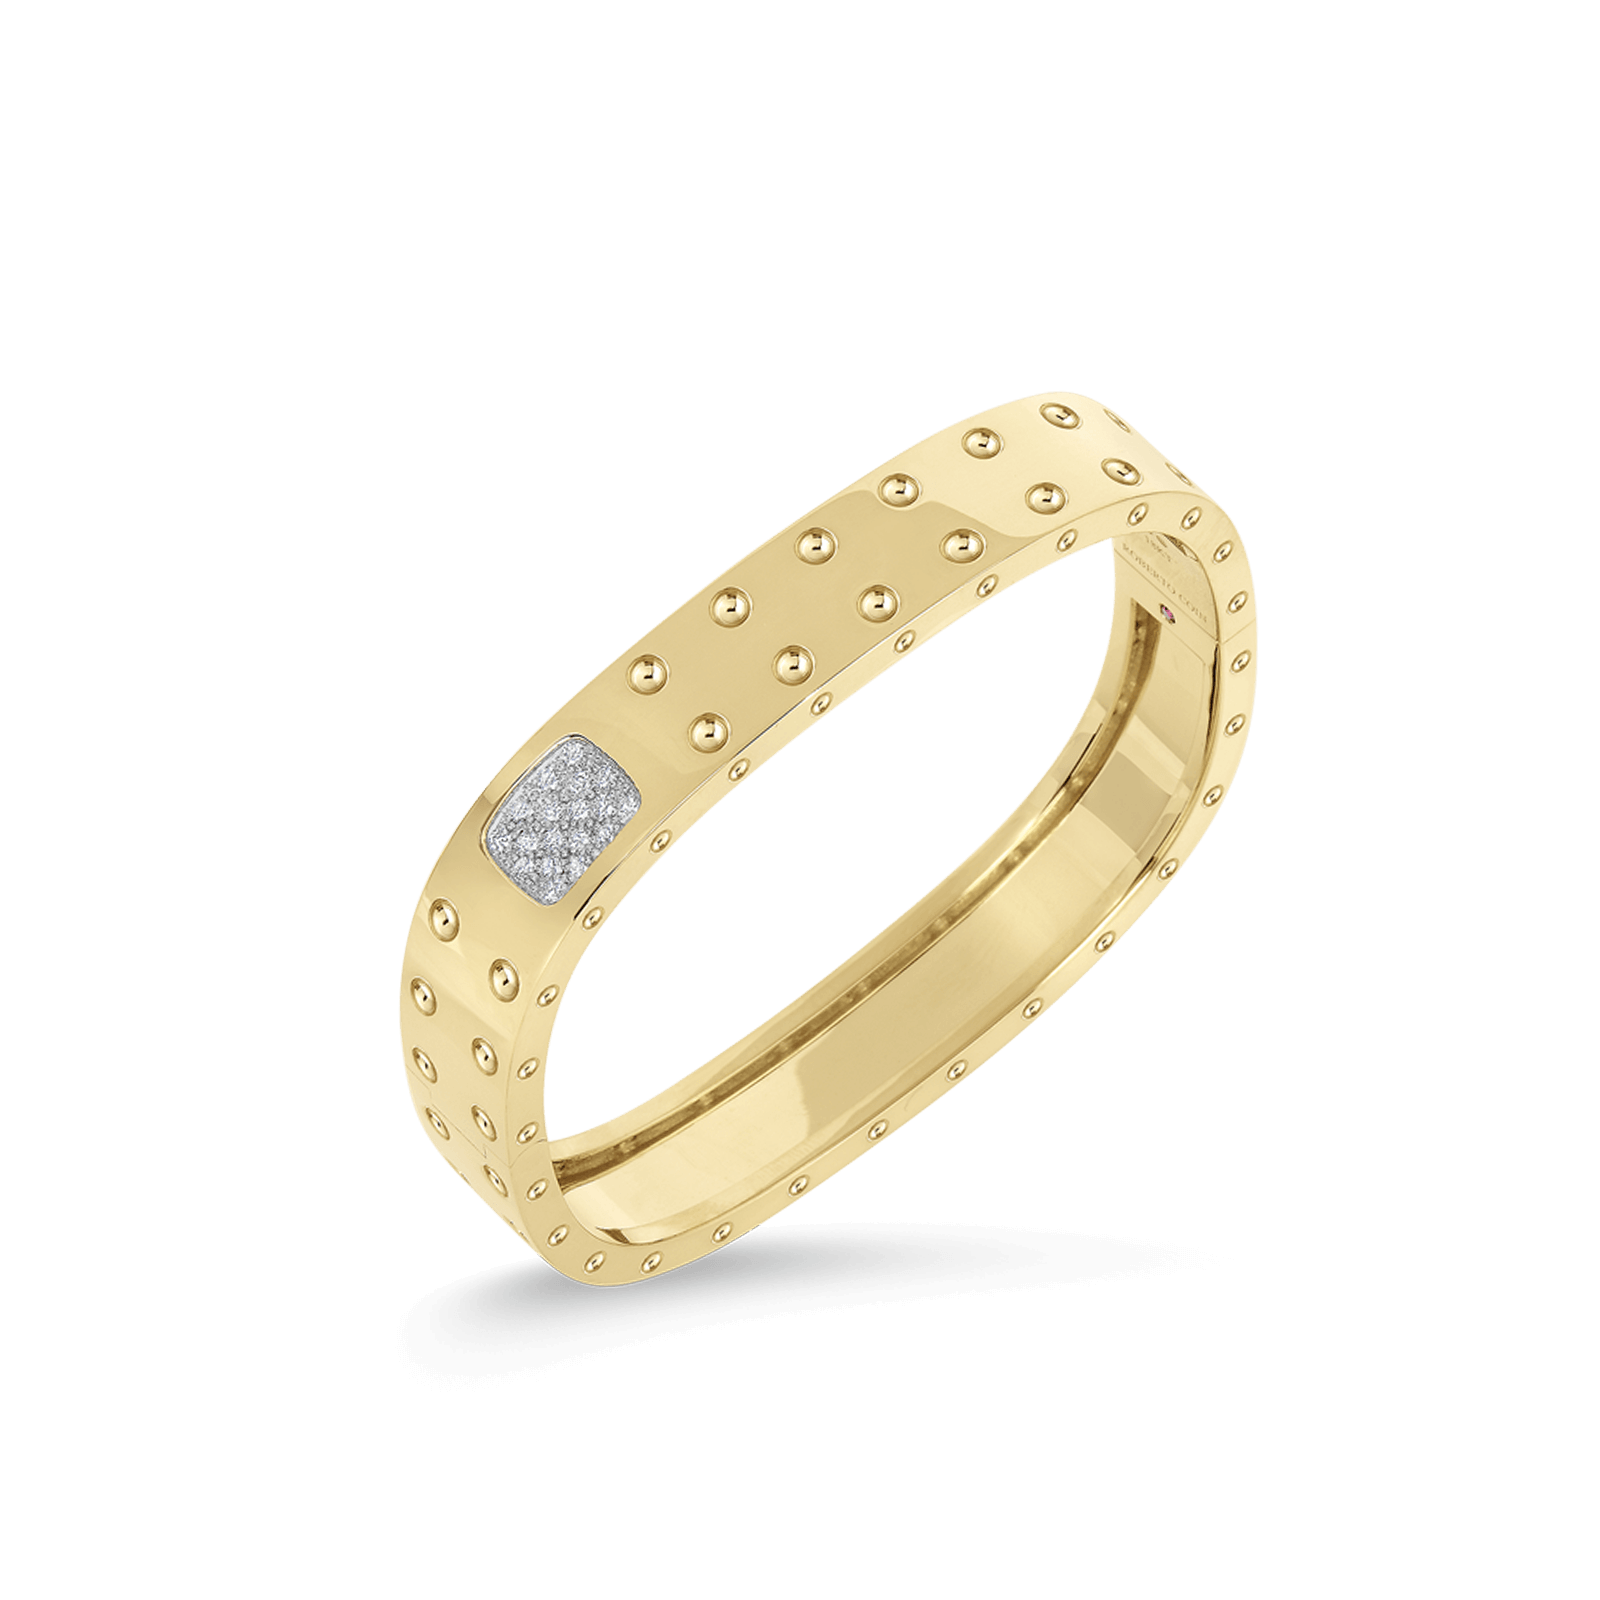 diamond bangles total gold white square diamonds rich bangle product